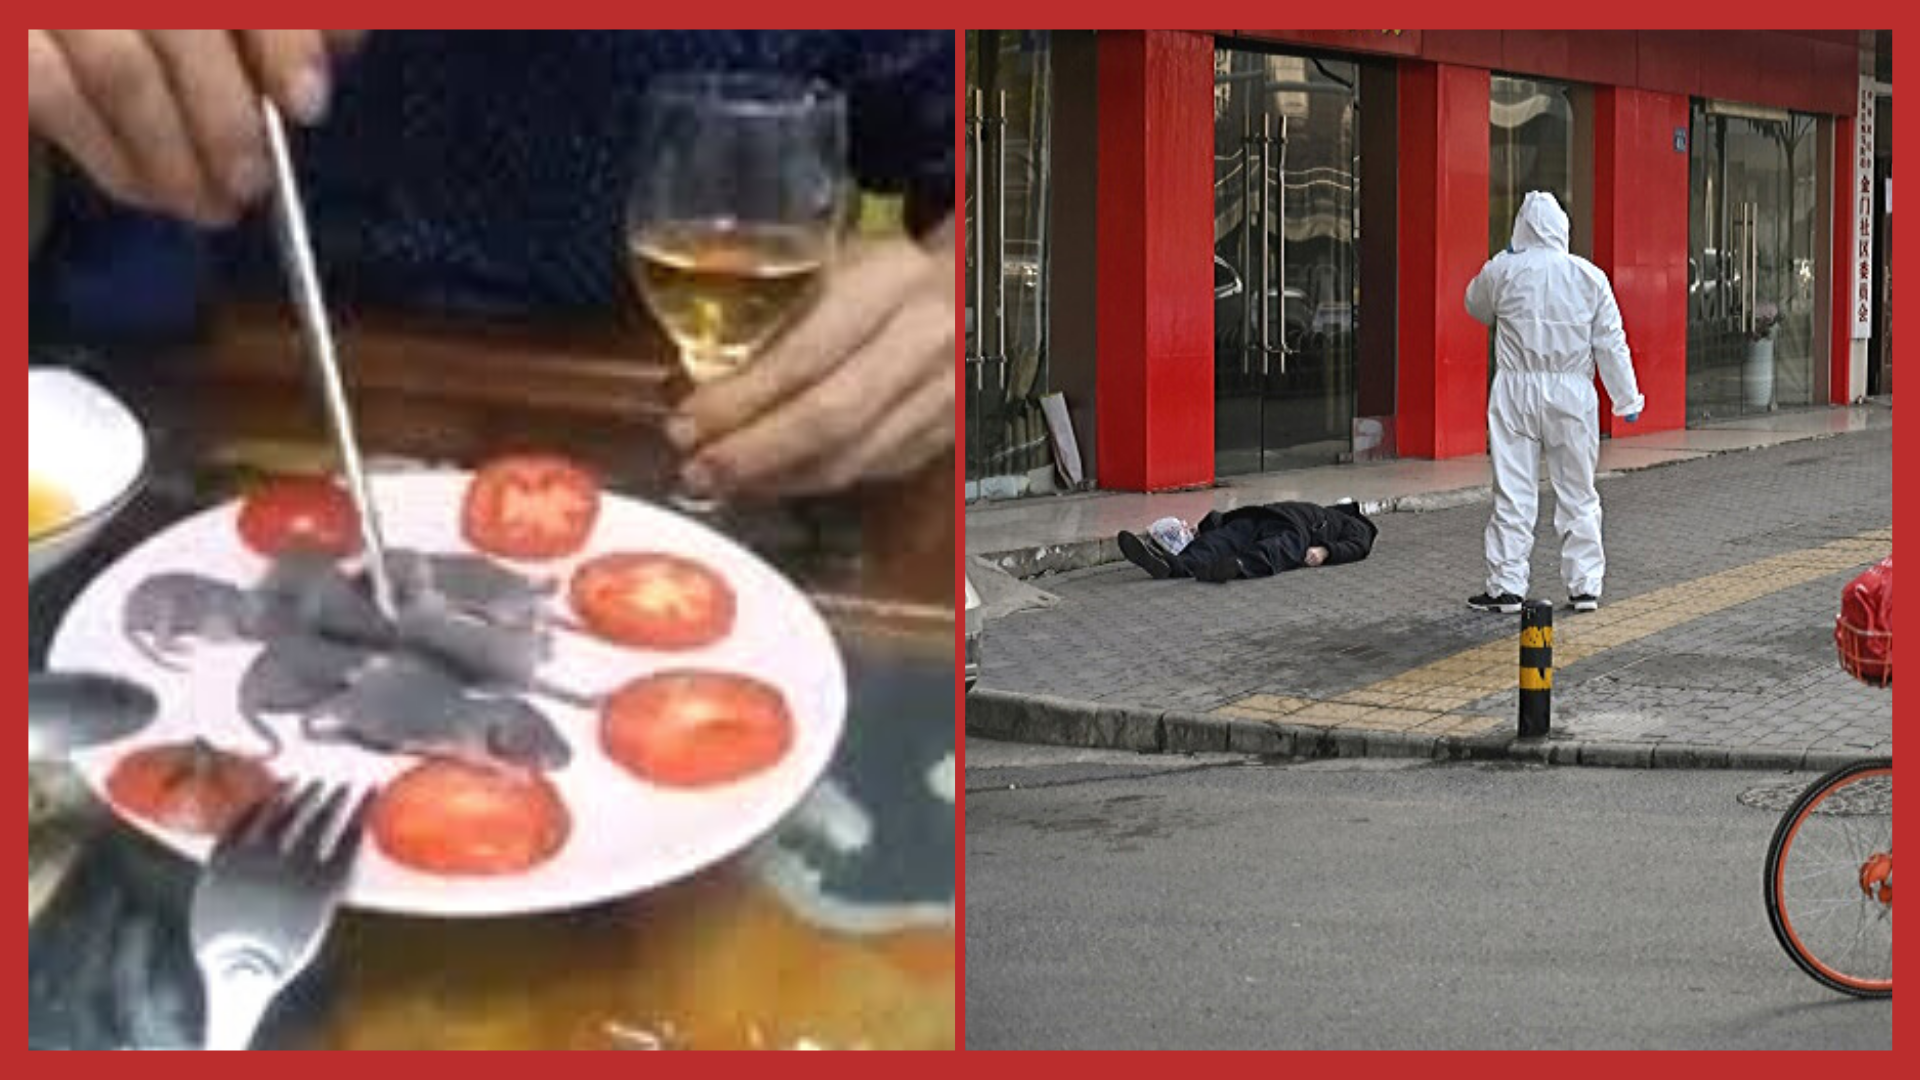 A Man Calmly Dips Live Rats in a Sauce and Eats it Amidst the Global Pandemic!